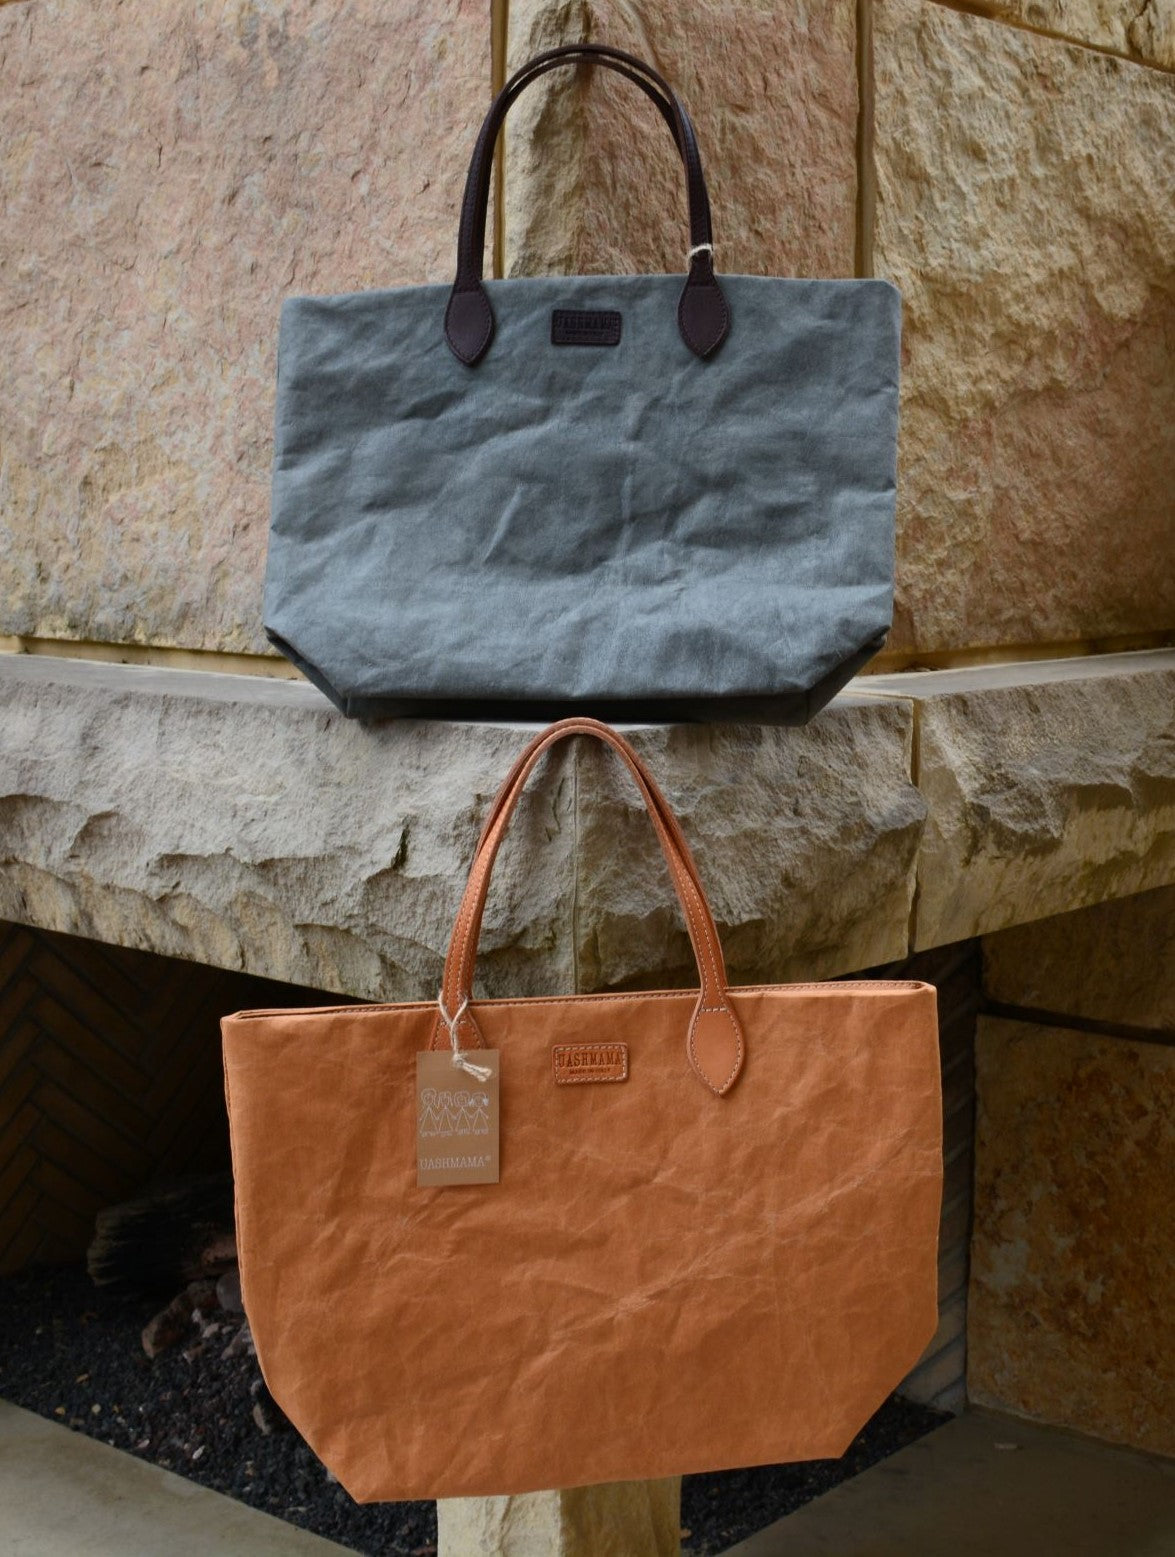 Totty Tote Large in Dark Grey